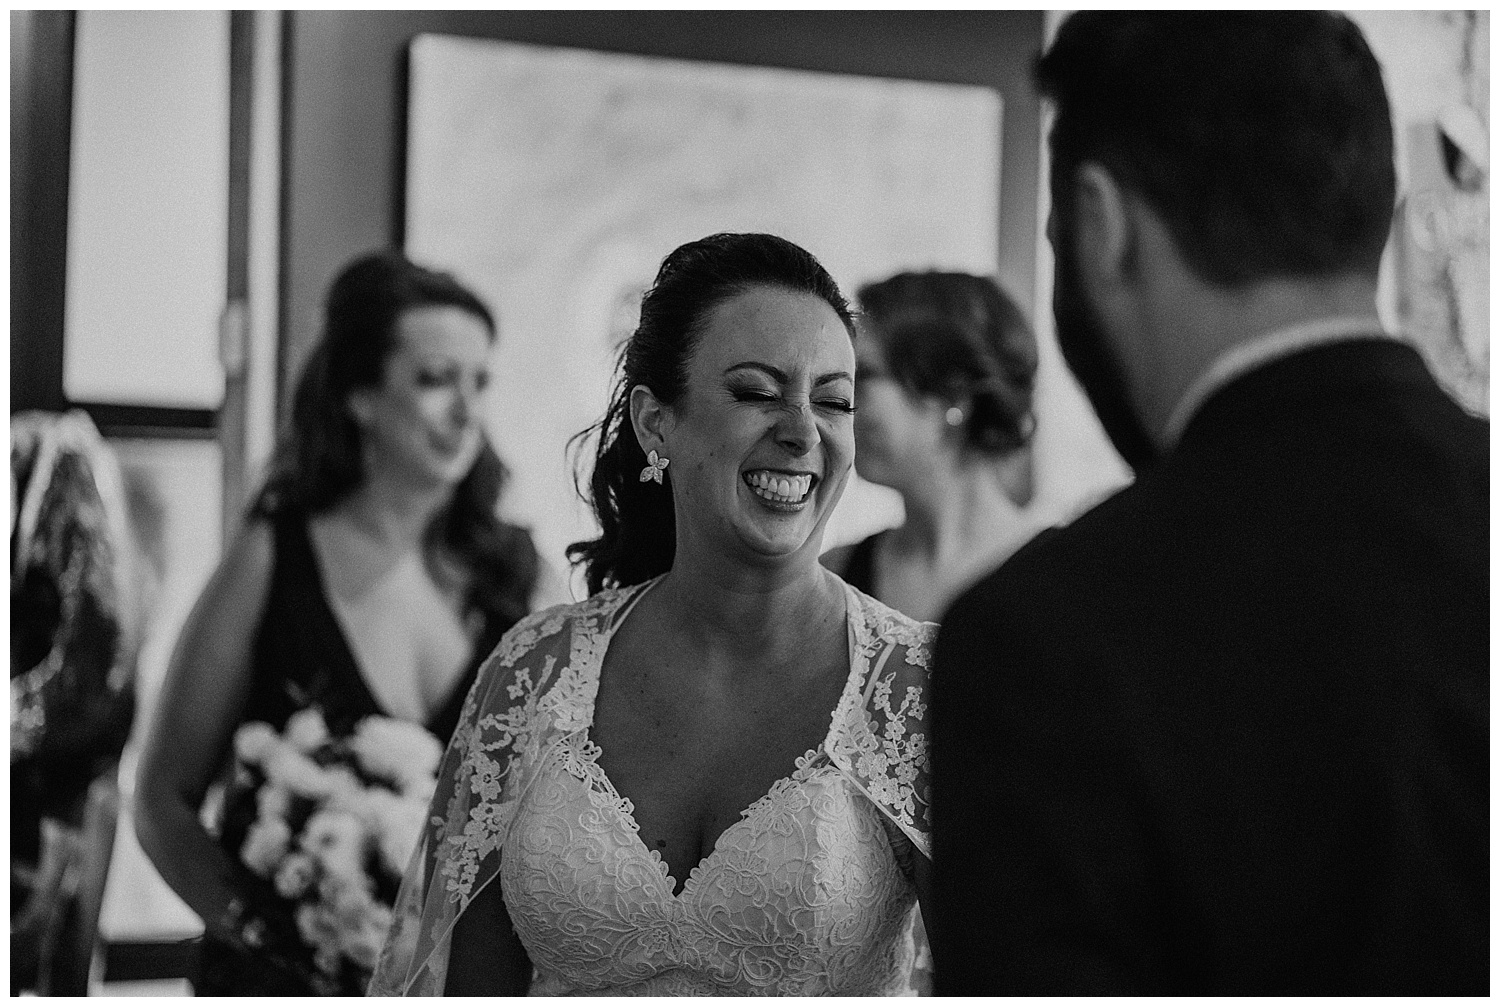 Katie Marie Photography | Archeo Wedding Arta Gallery Wedding | Distillery District Wedding | Toronto Wedding Photographer | Hamilton Toronto Ontario Wedding Photographer |_0106.jpg